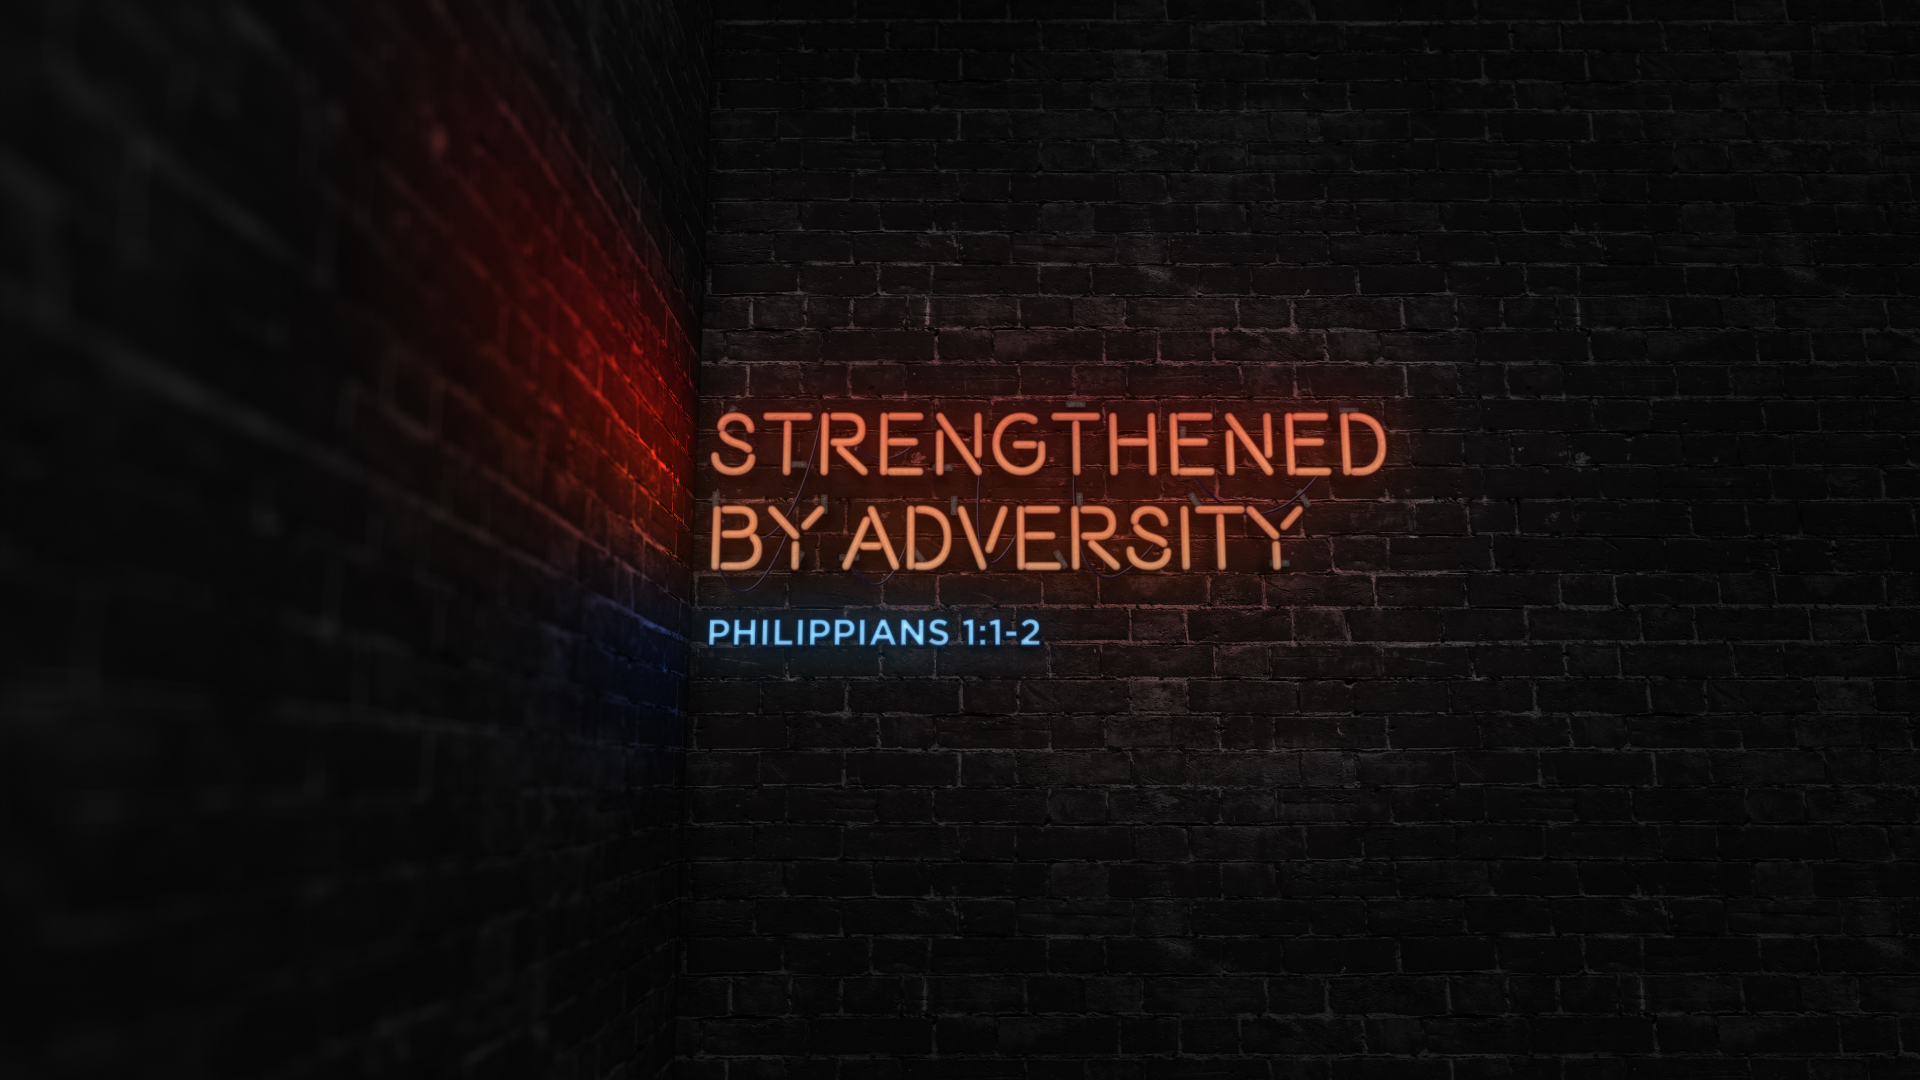 Strengthened by Adversity